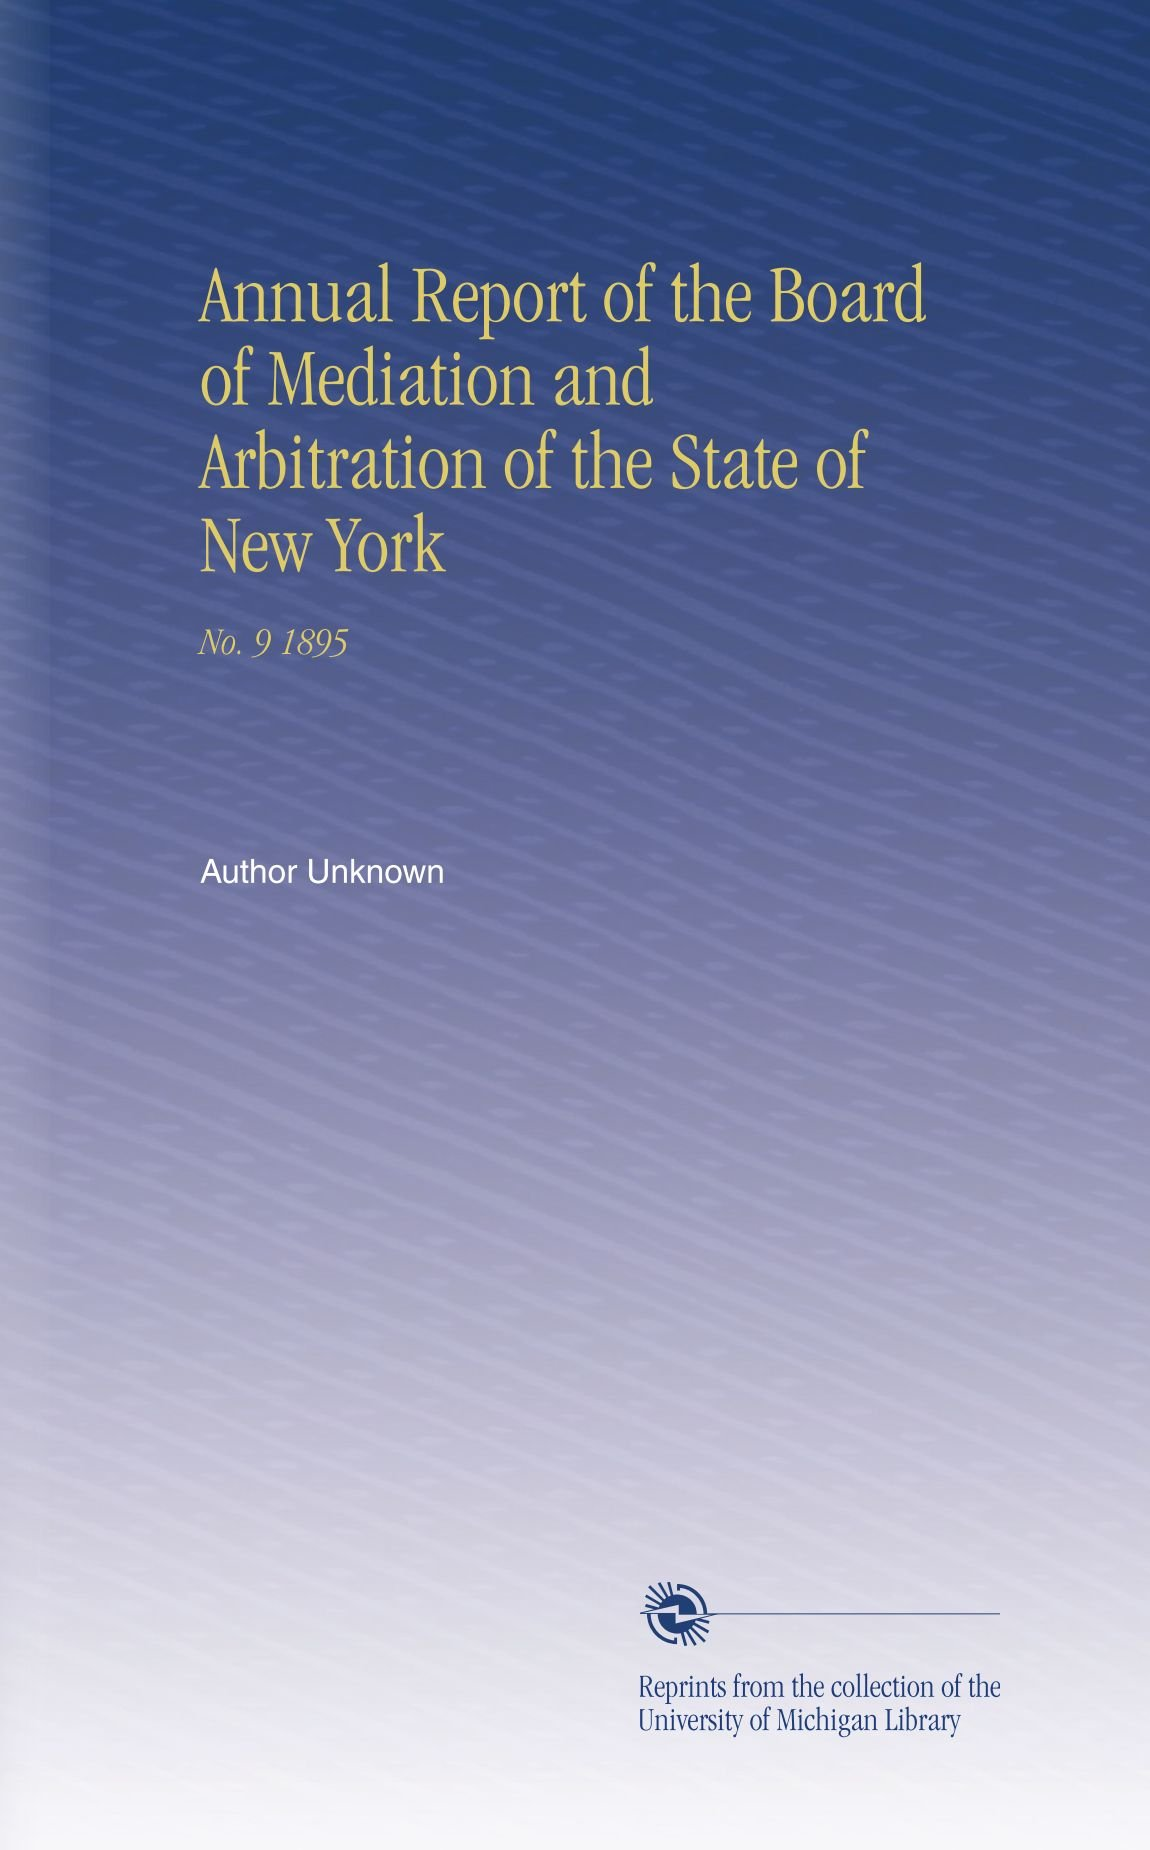 Read Online Annual Report of the Board of Mediation and Arbitration of the State of New York: No. 9 1895 pdf